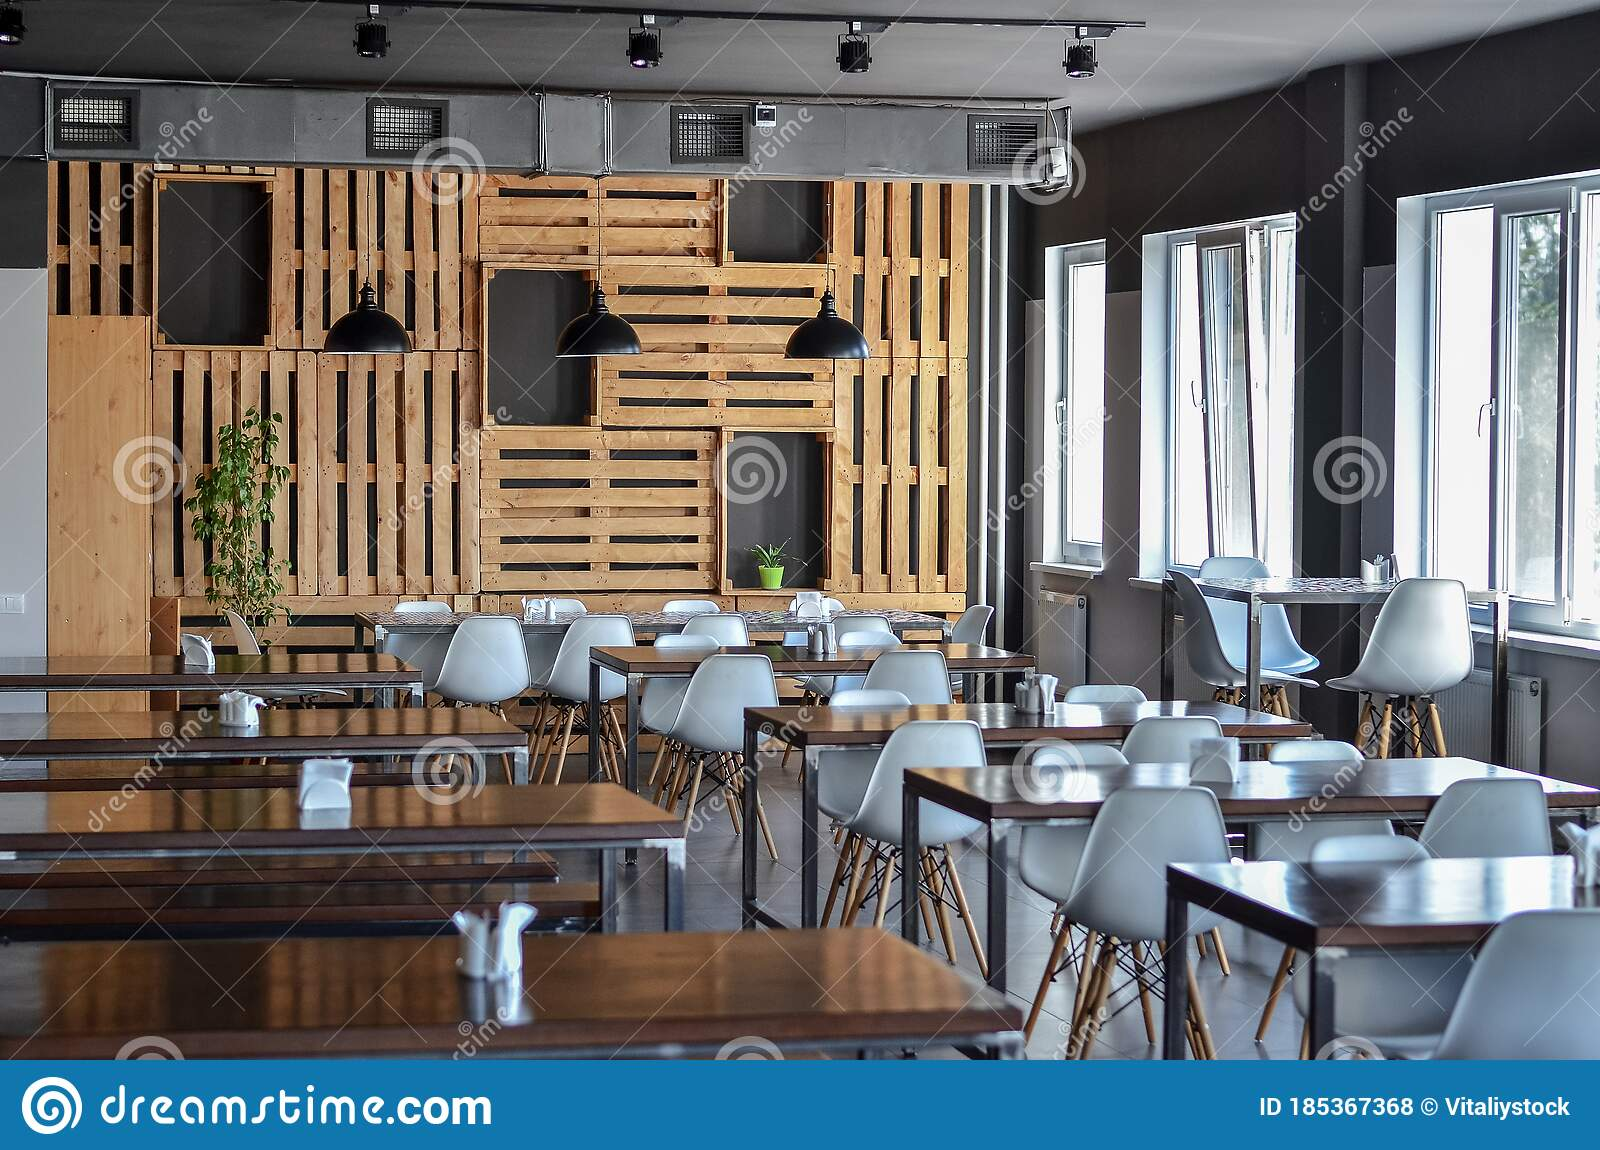 Modern Interior Of A Cafe Or A Restaurant Stock Photo Image Of Abstract Counter 185367368